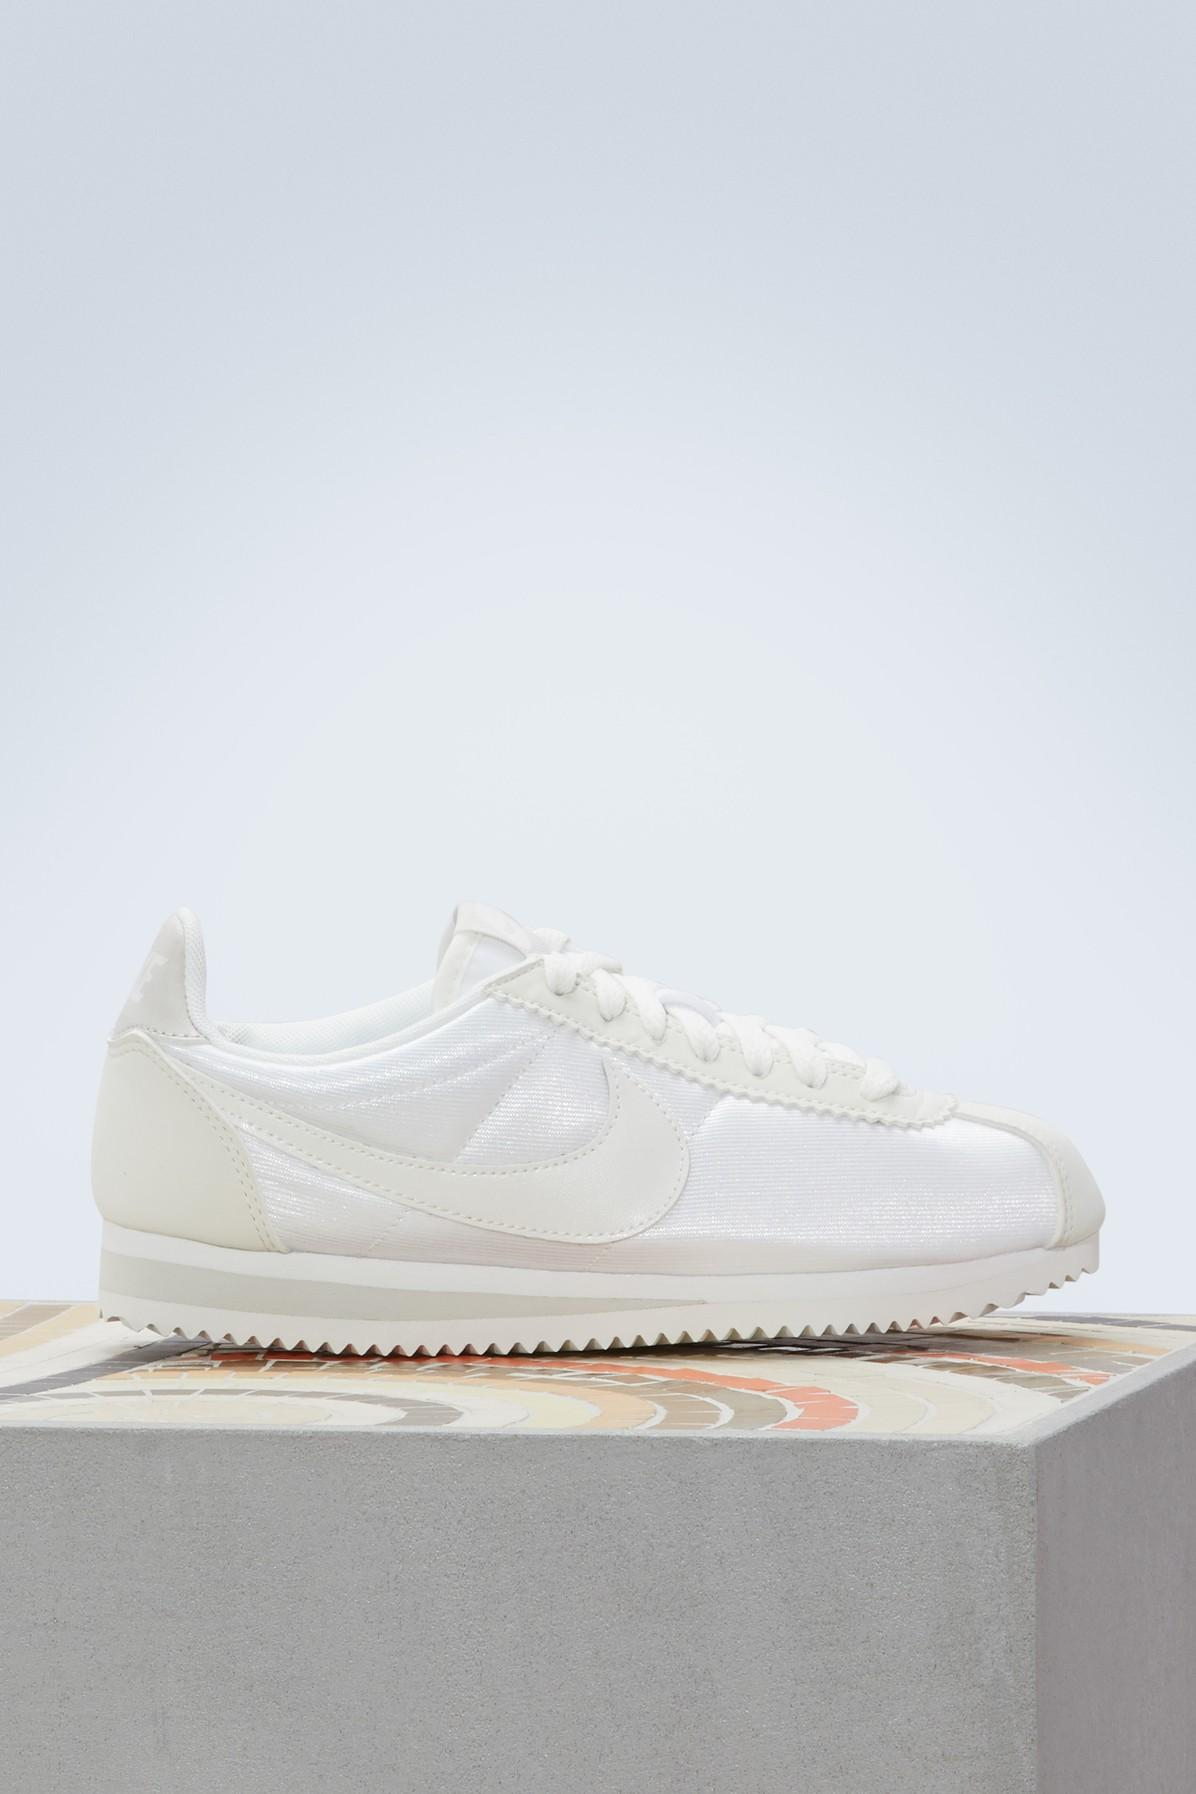 huge selection of 9e49b 73efe Cortez Classic Sneakers in Ivory/Ivory-Light Bone - Summit White